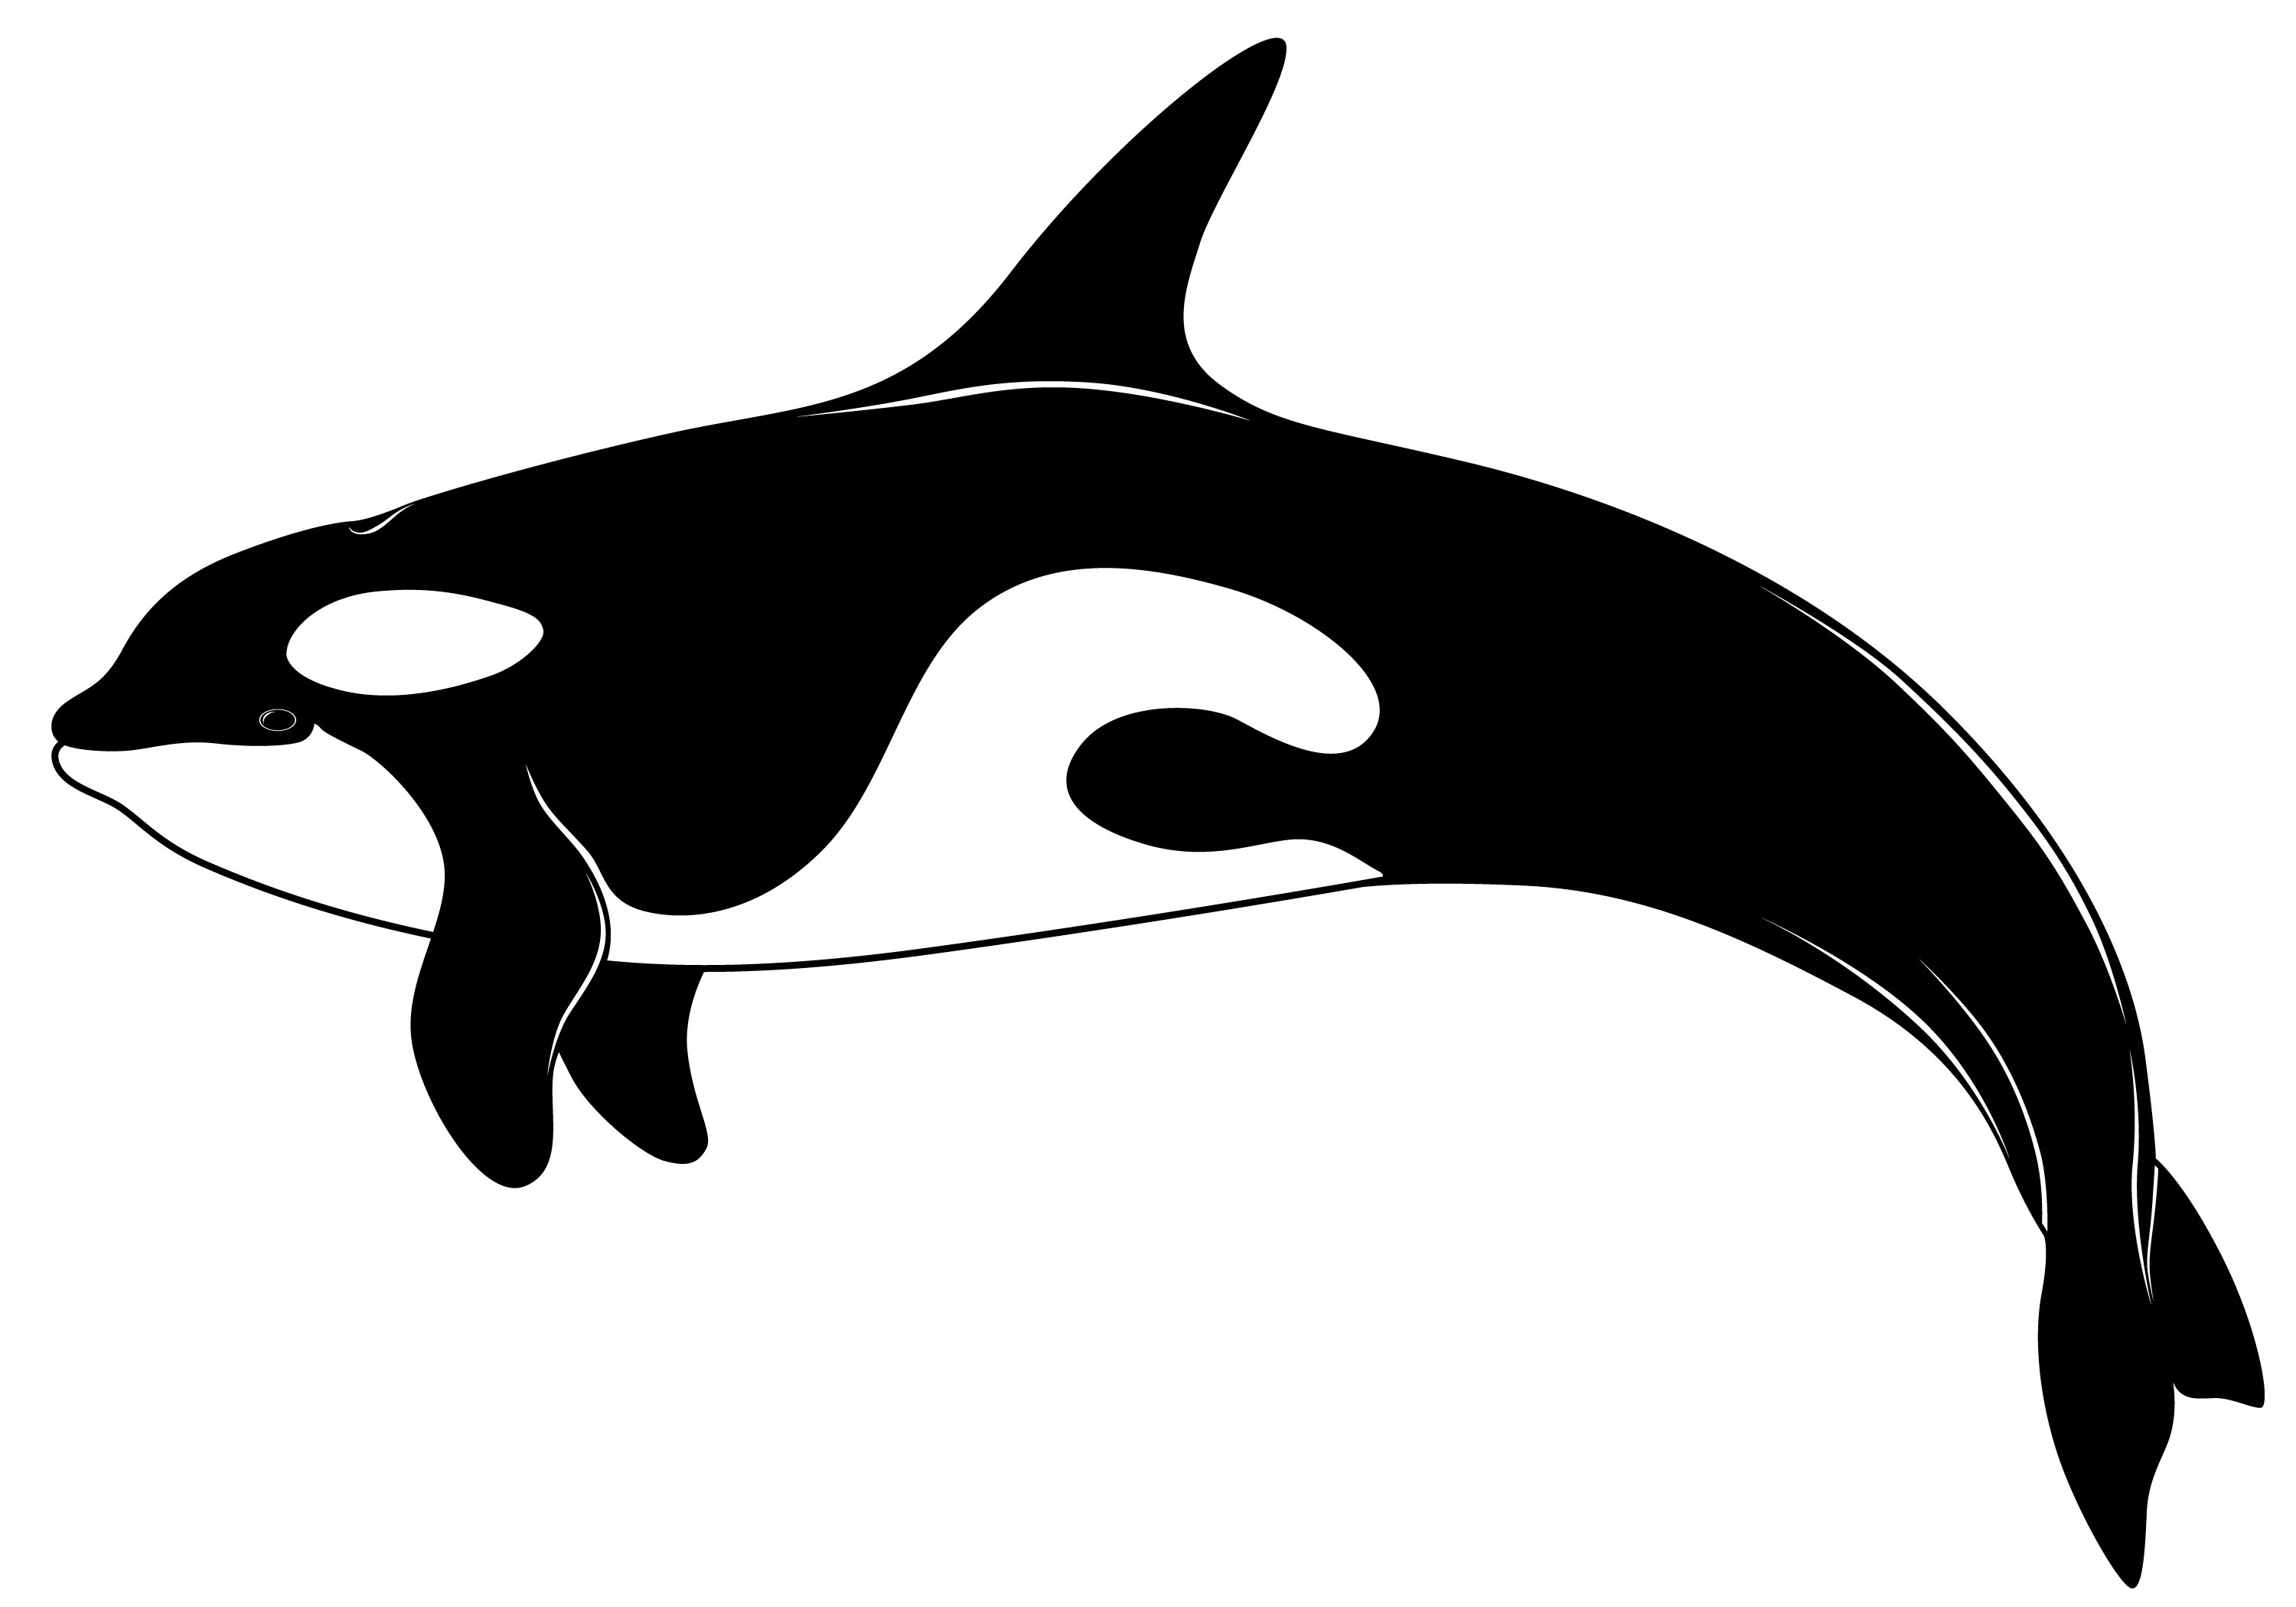 Orca clipart Orca 3 WikiClipArt 2 art